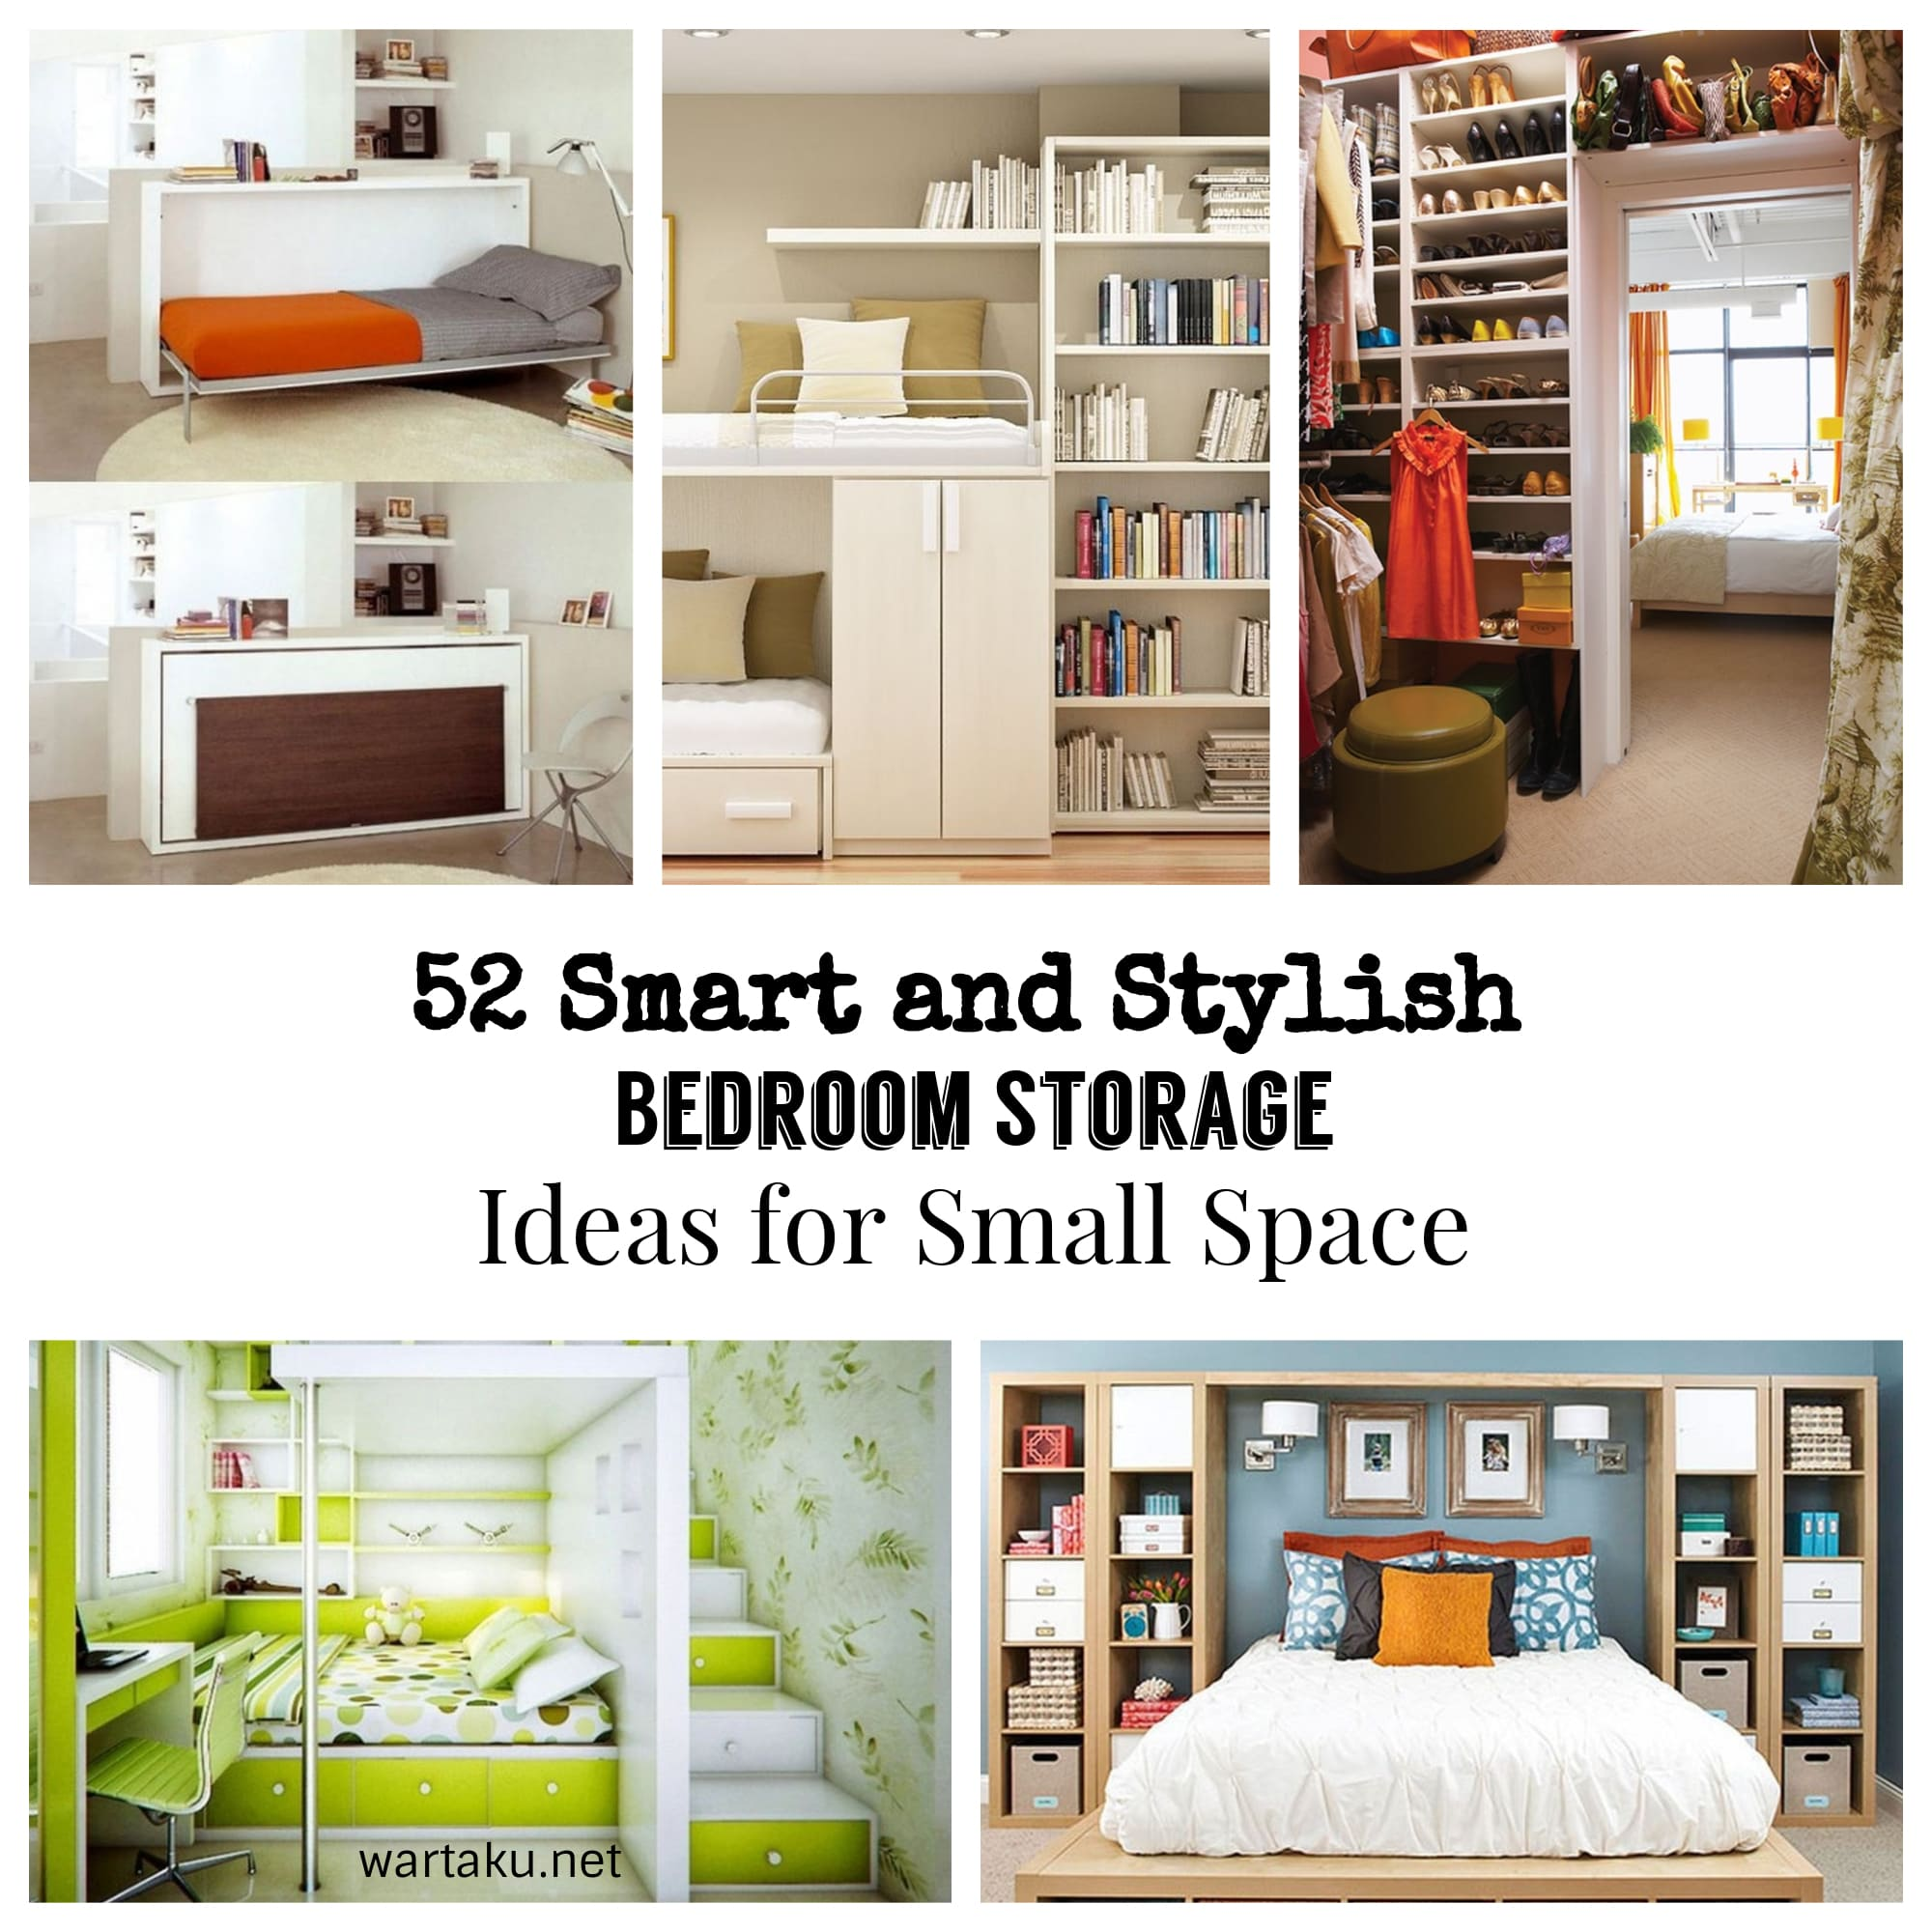 Simphome.com A smart and stylish bedroom storage ideas for small space wartaku with regard to storage ideas for small spaces bedroom